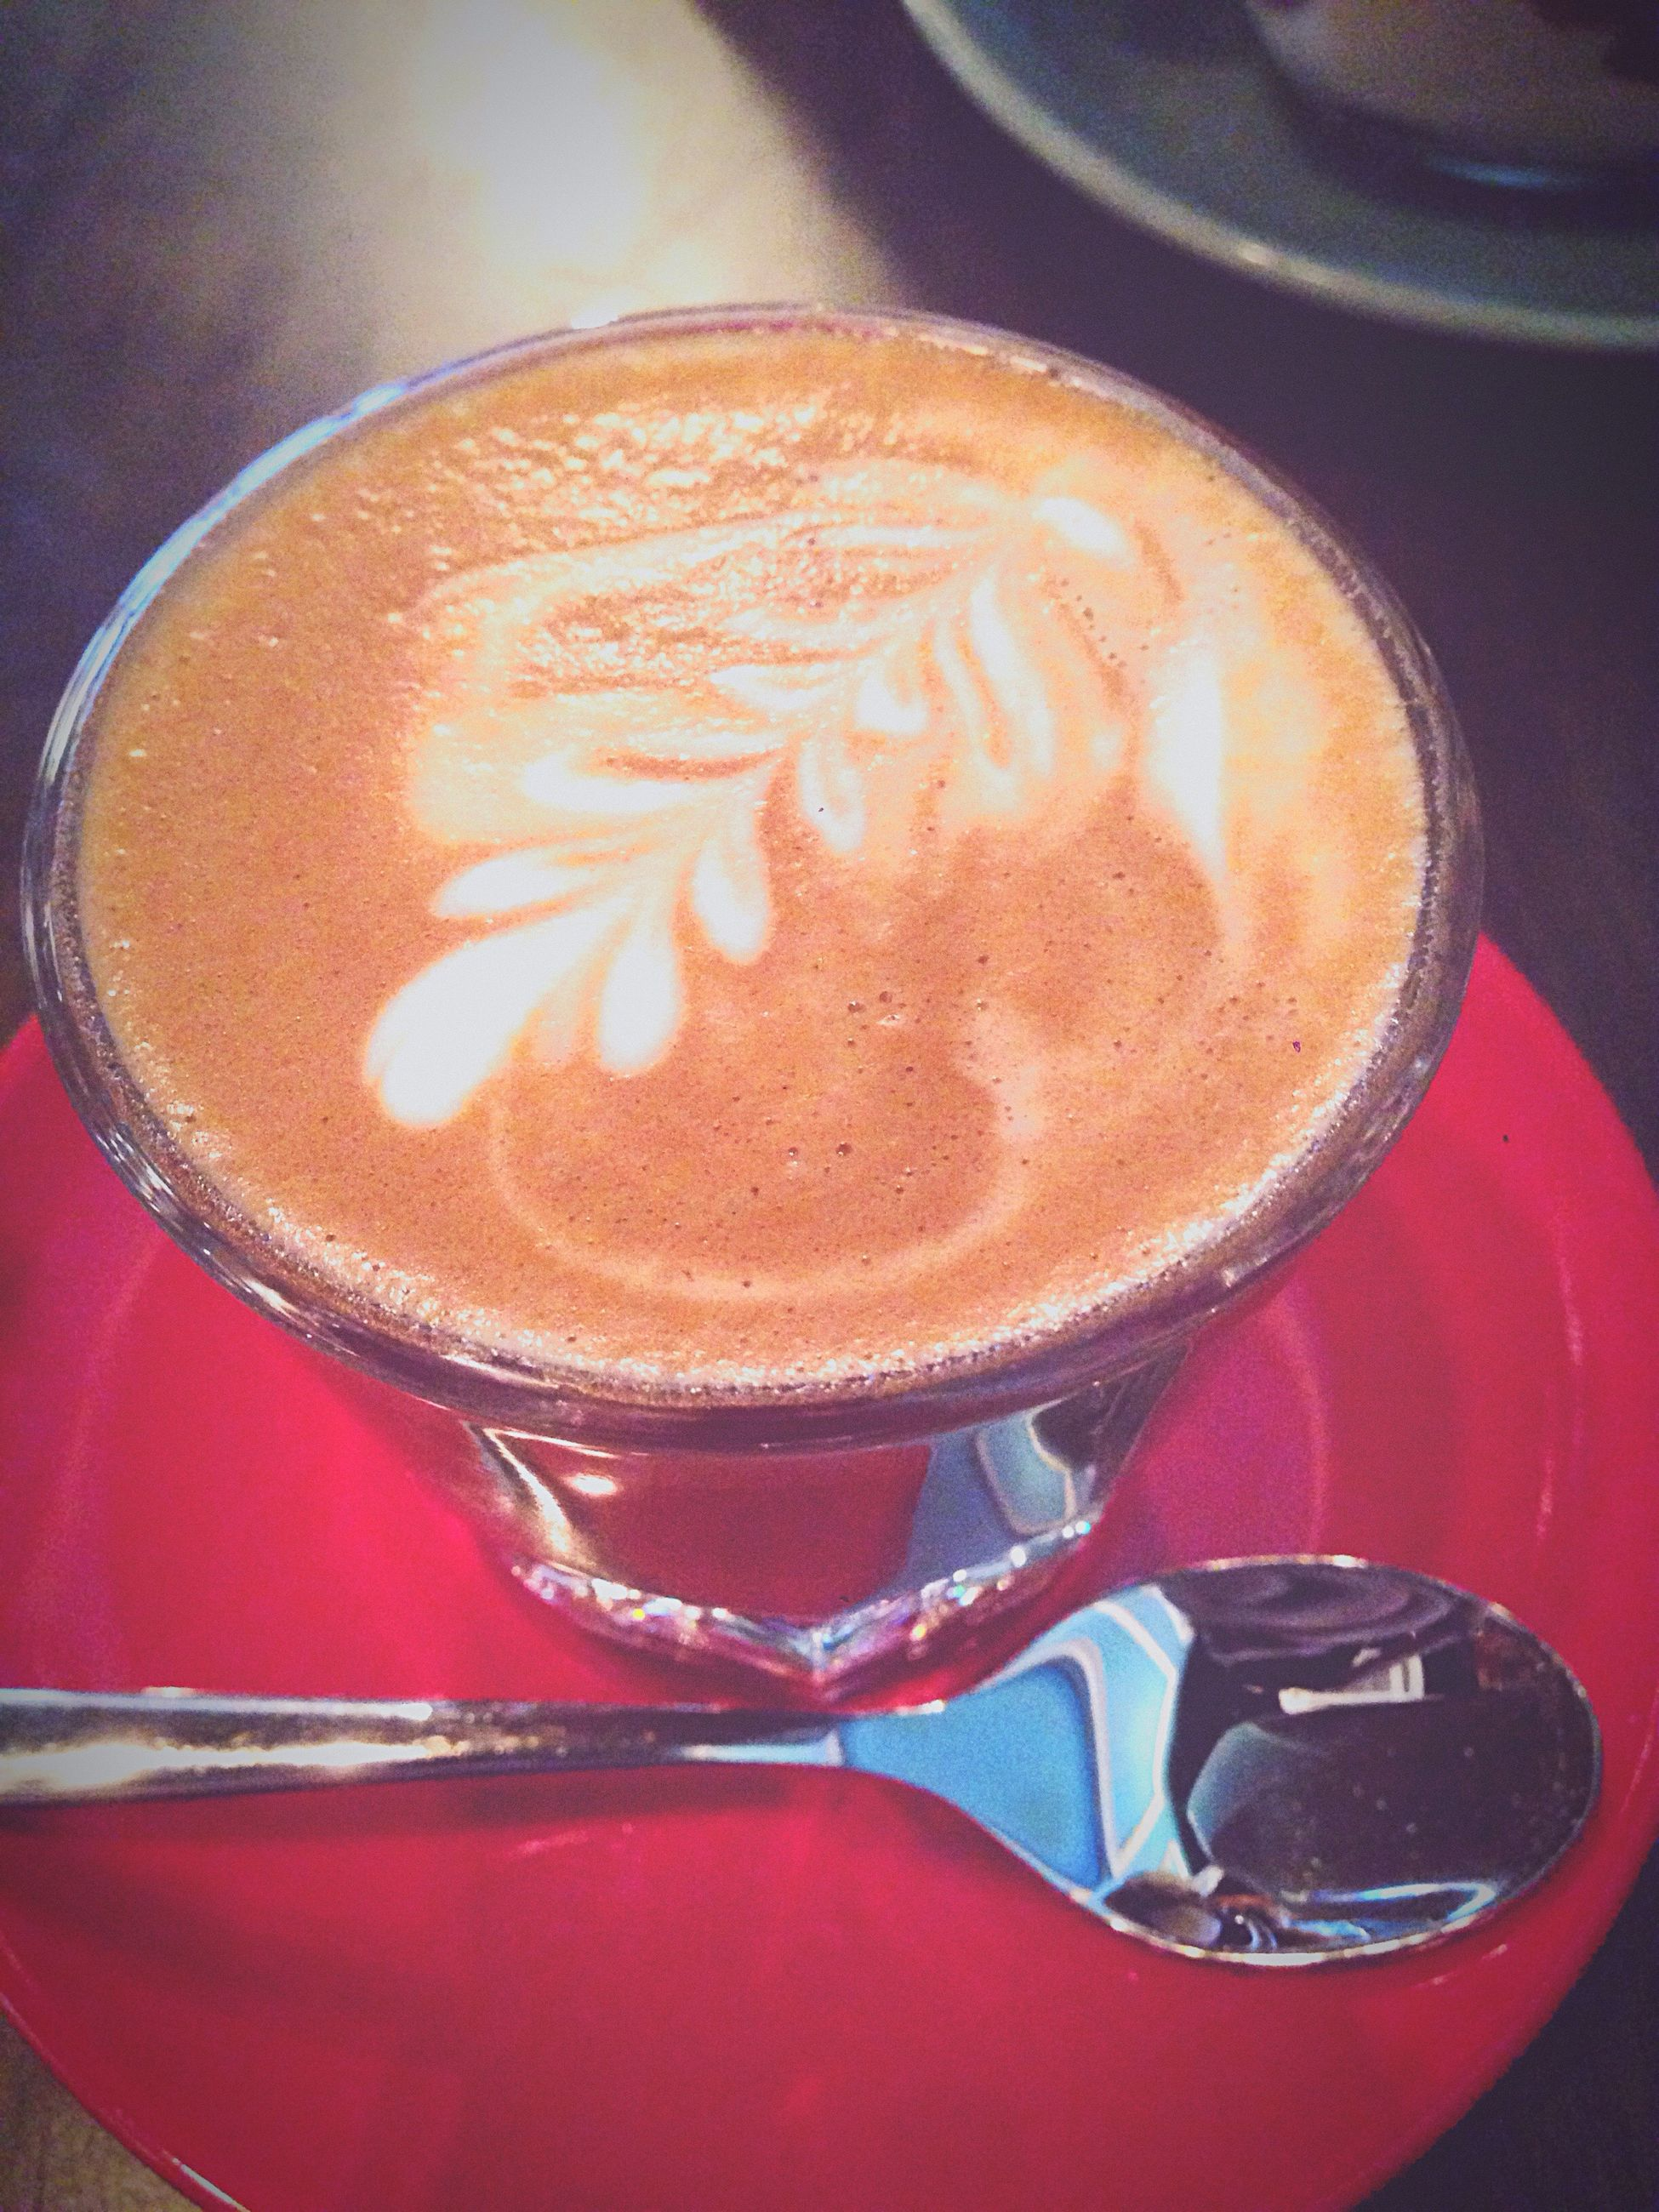 close-up, freshness, red, refreshment, still life, coffee - drink, indulgence, focus on foreground, no people, selective focus